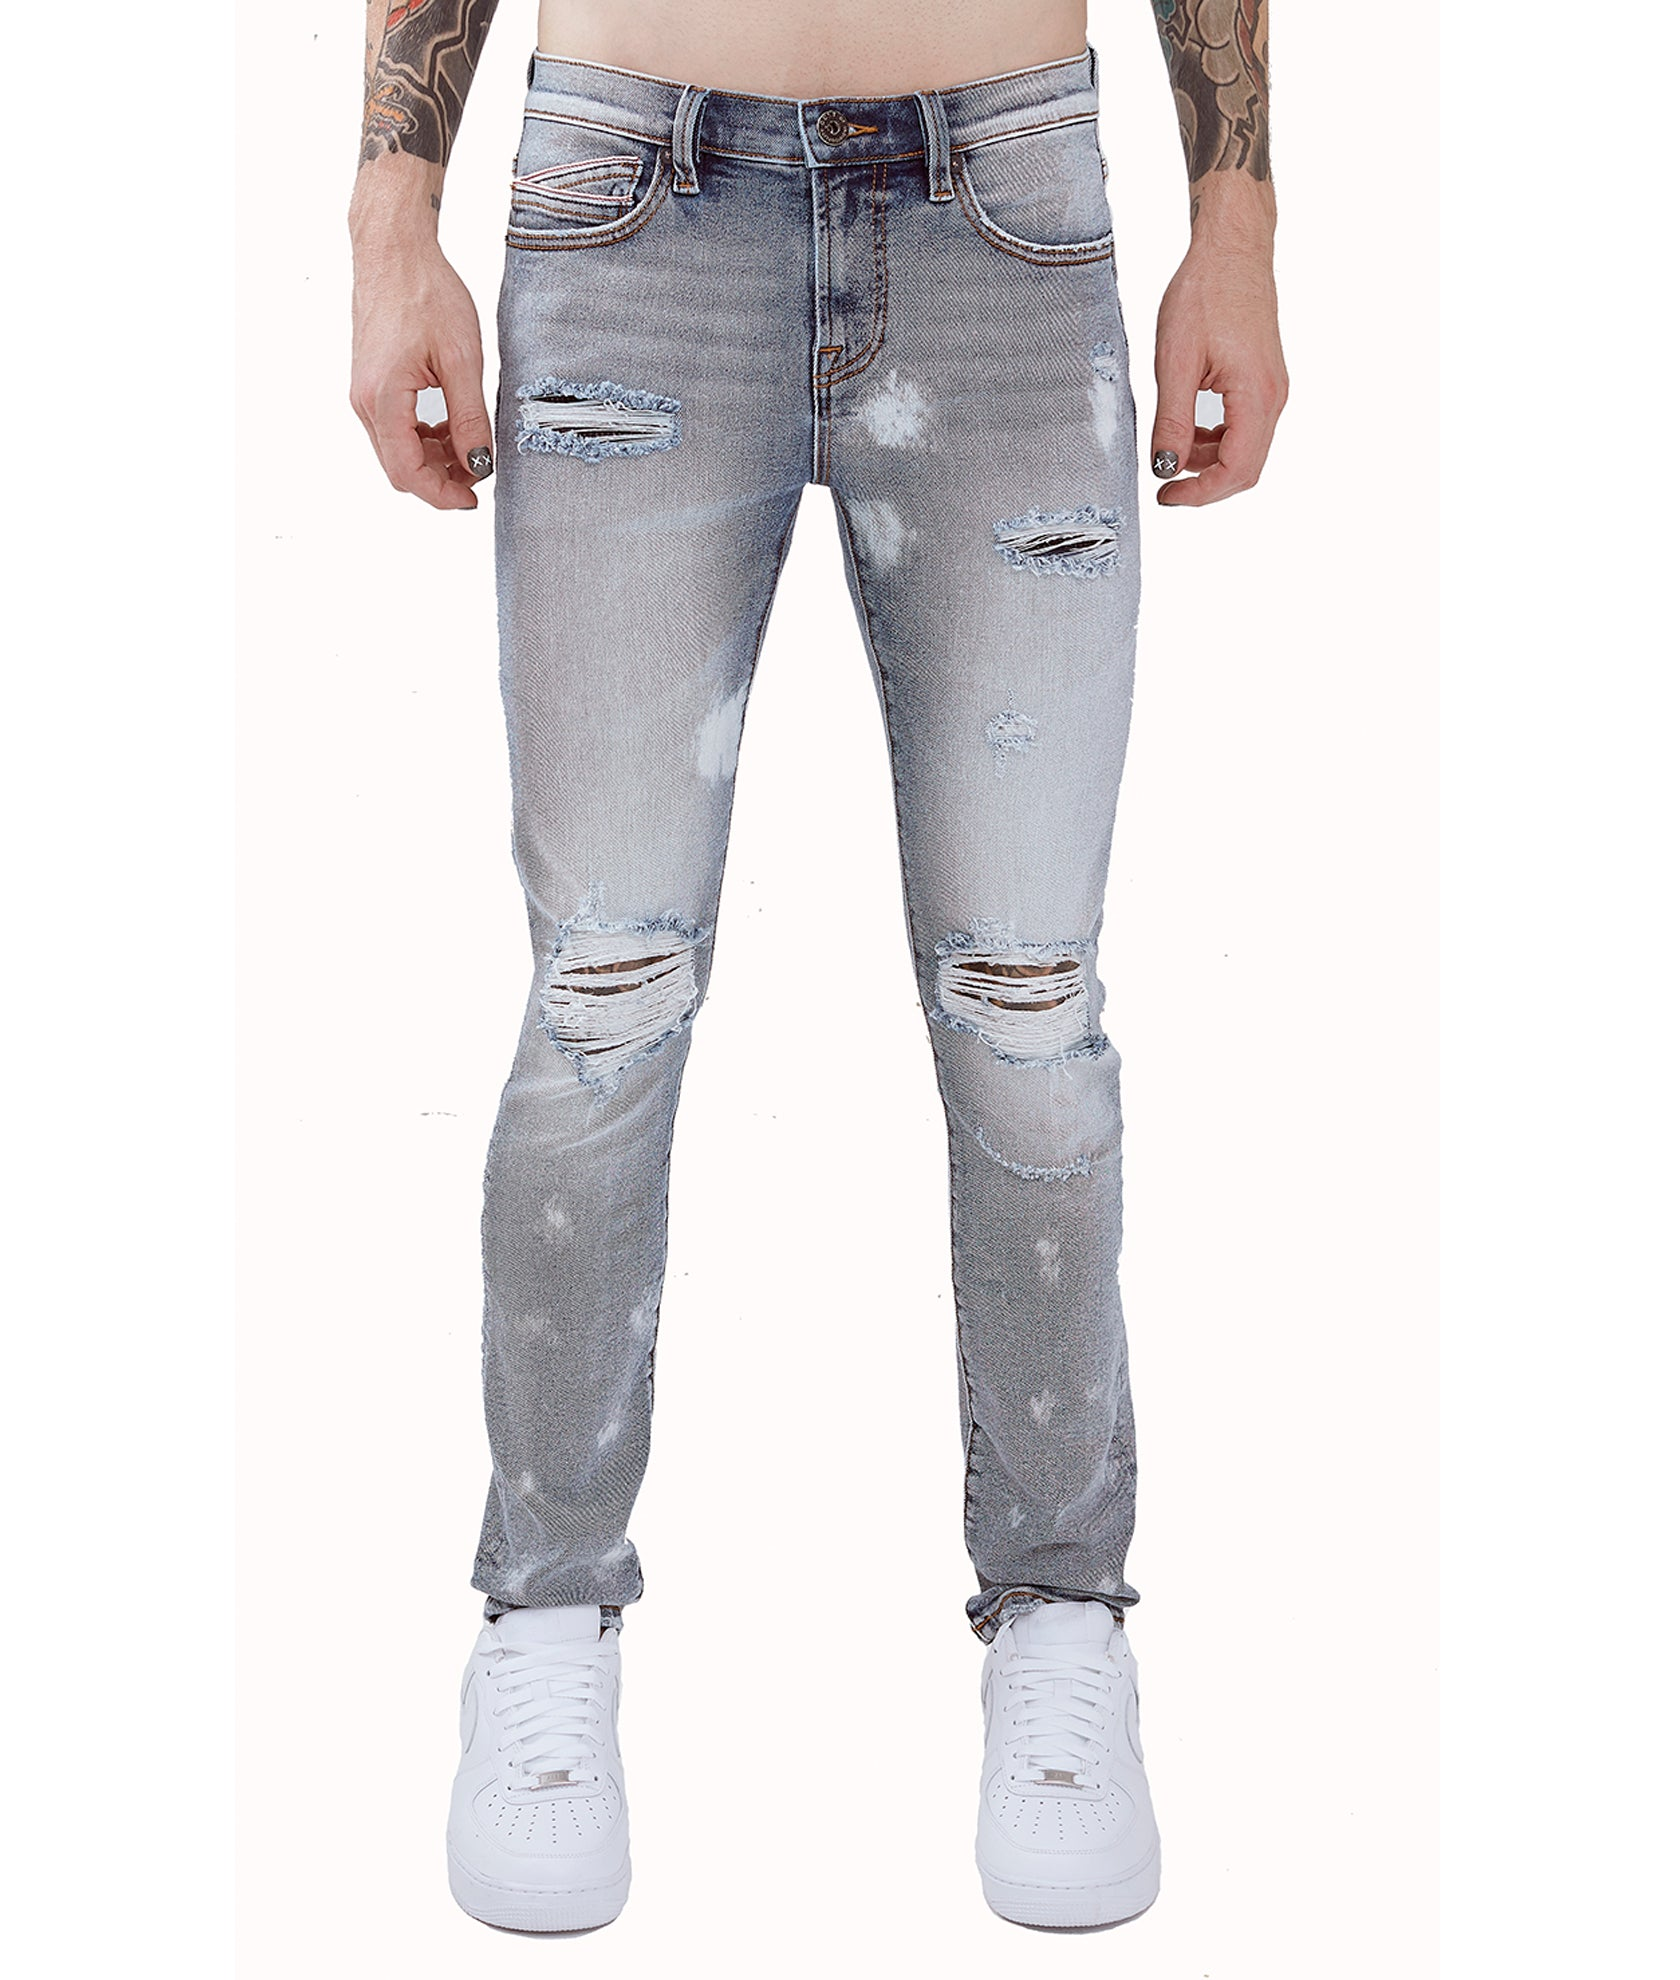 Cult of IndividualityMen's Punk Super Skinny Premium Stretch Denim Jeans in Classic